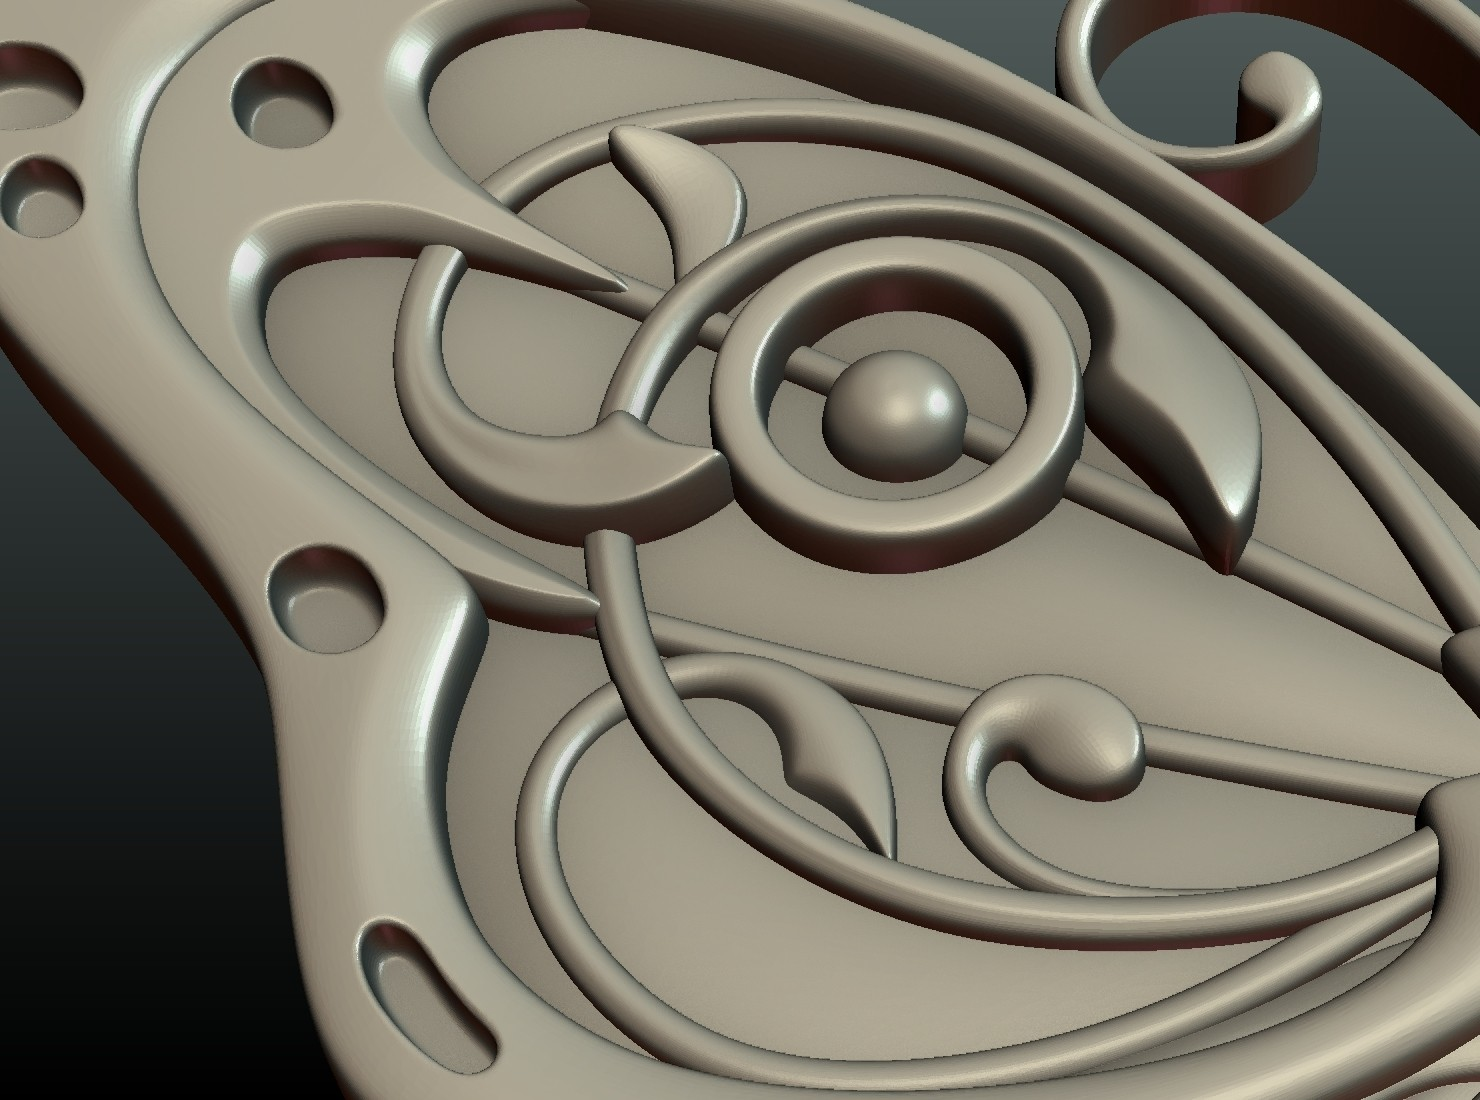 Butterfly_OPGL_27-05.jpg Download STL file Butterfly relief • Model to 3D print, Skazok